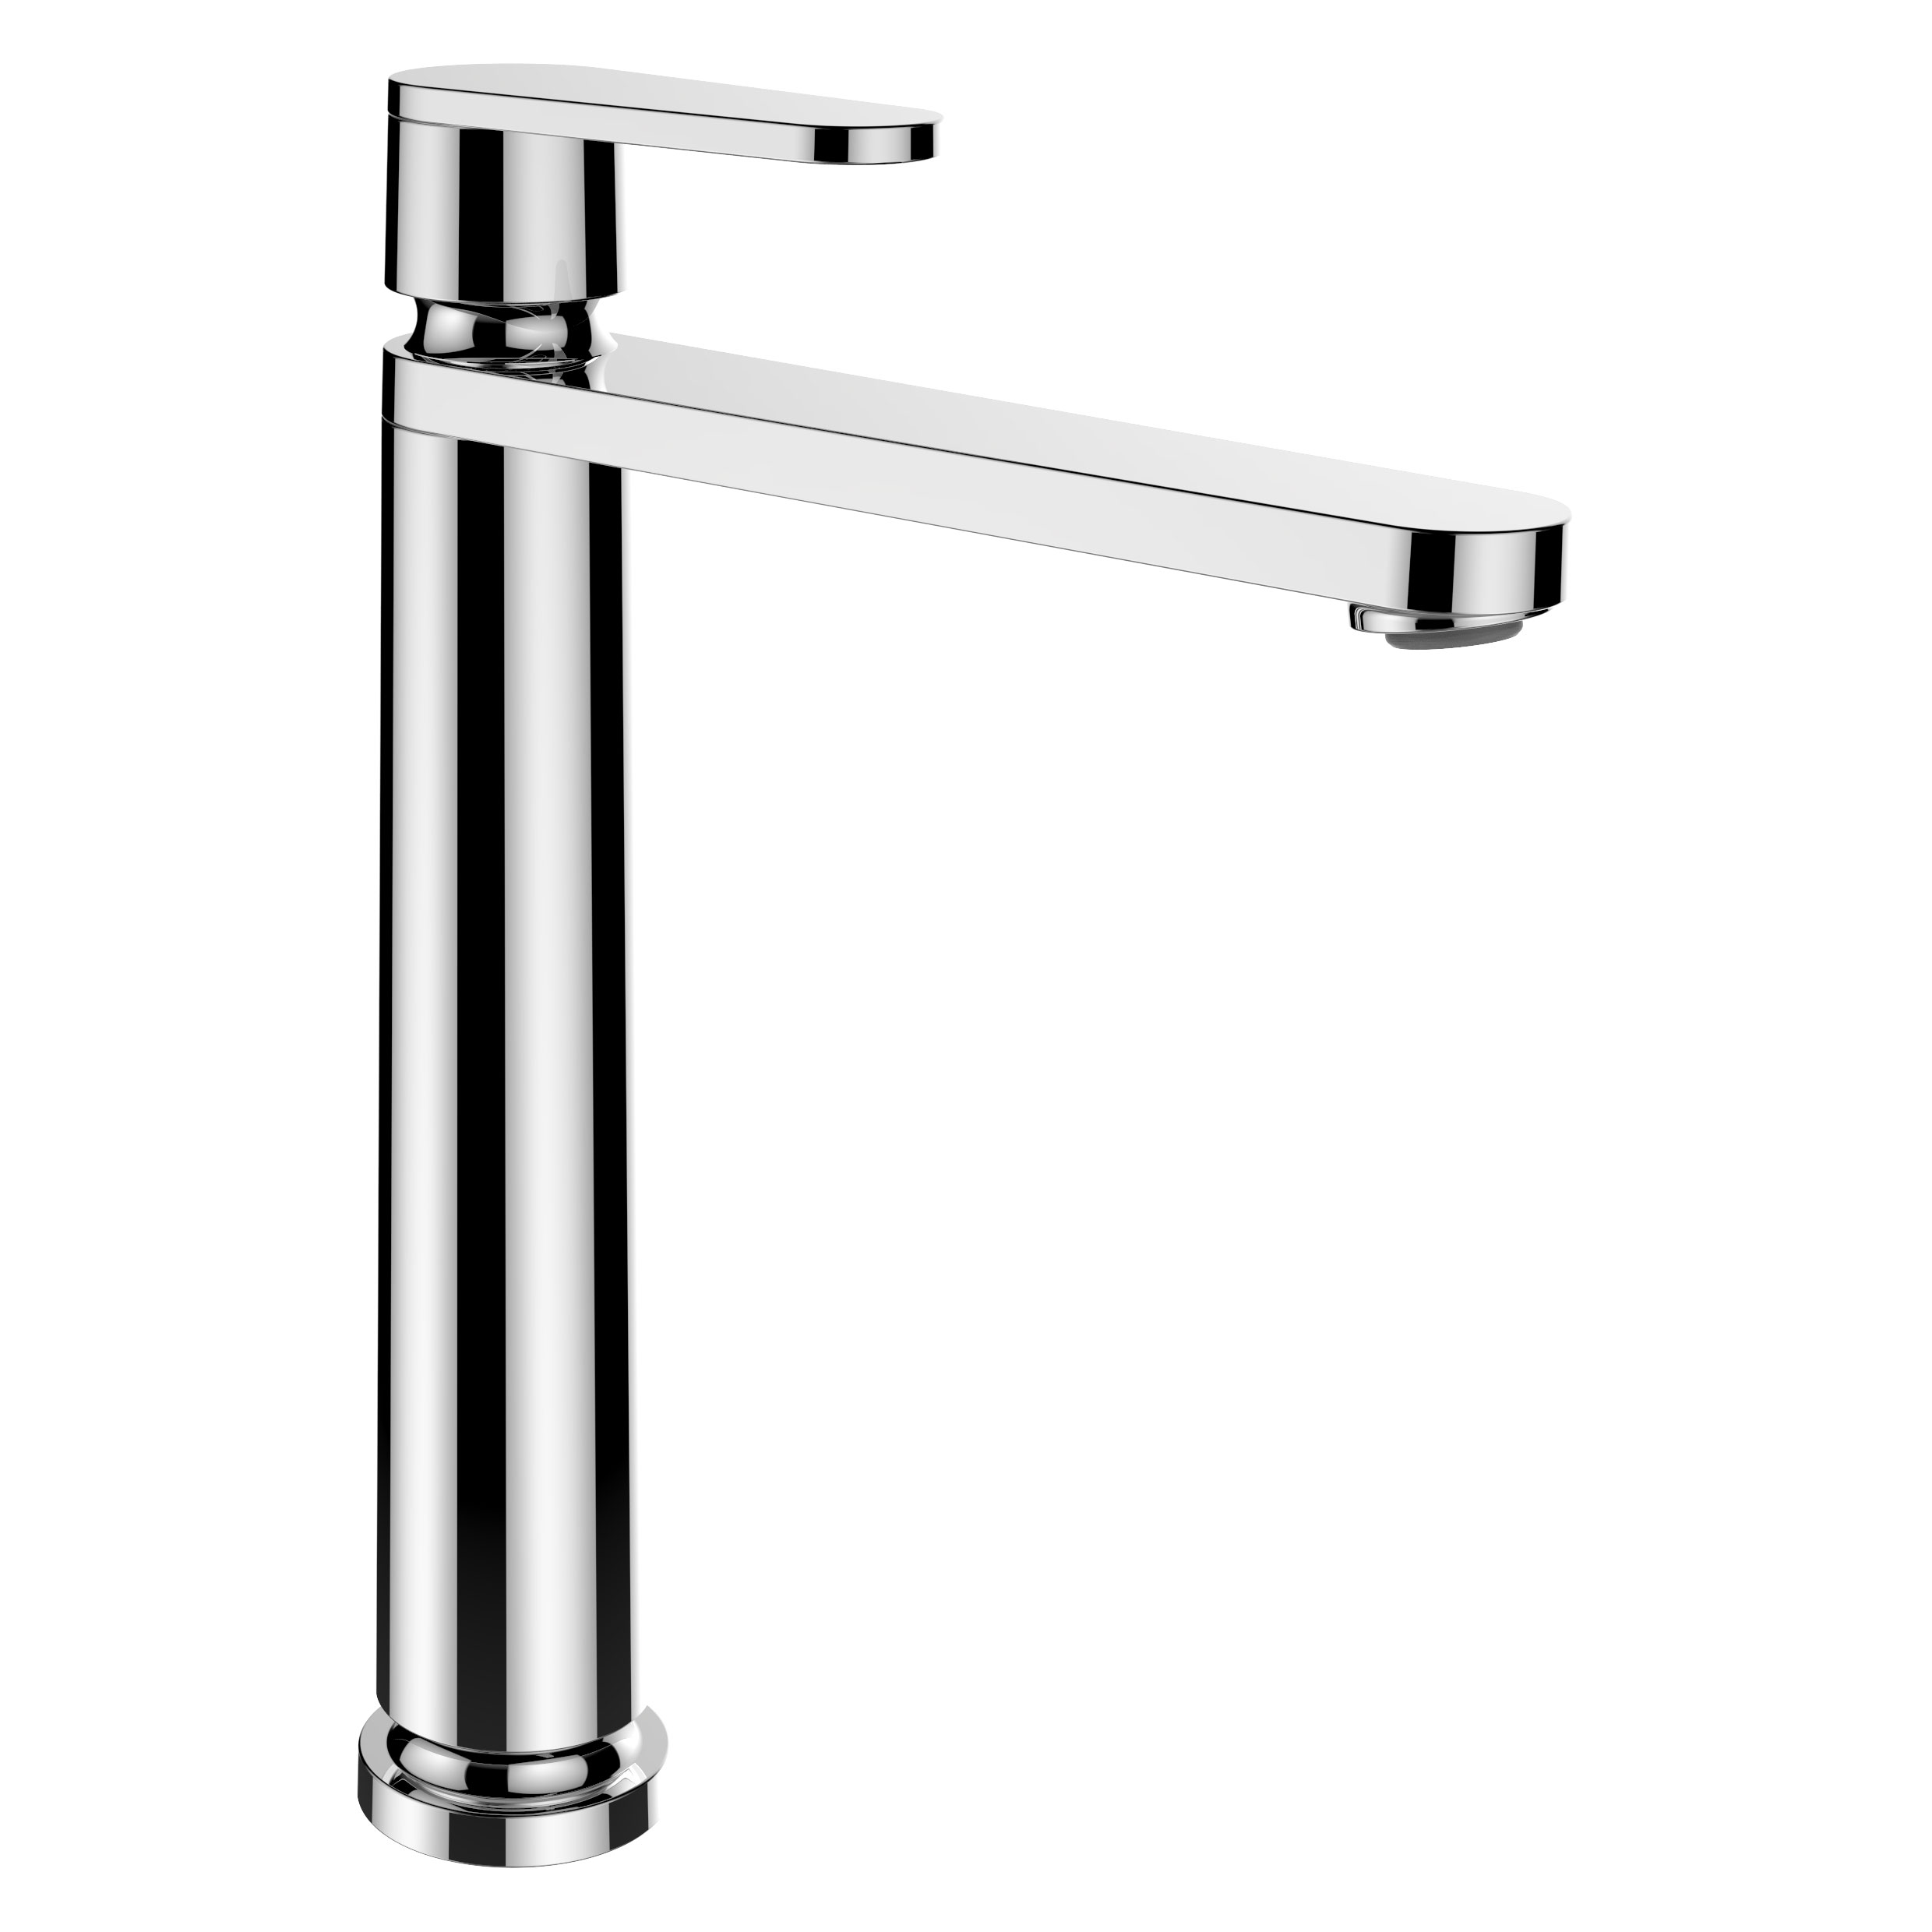 click on Tall Basin Mixer - 175mm Spout image to enlarge